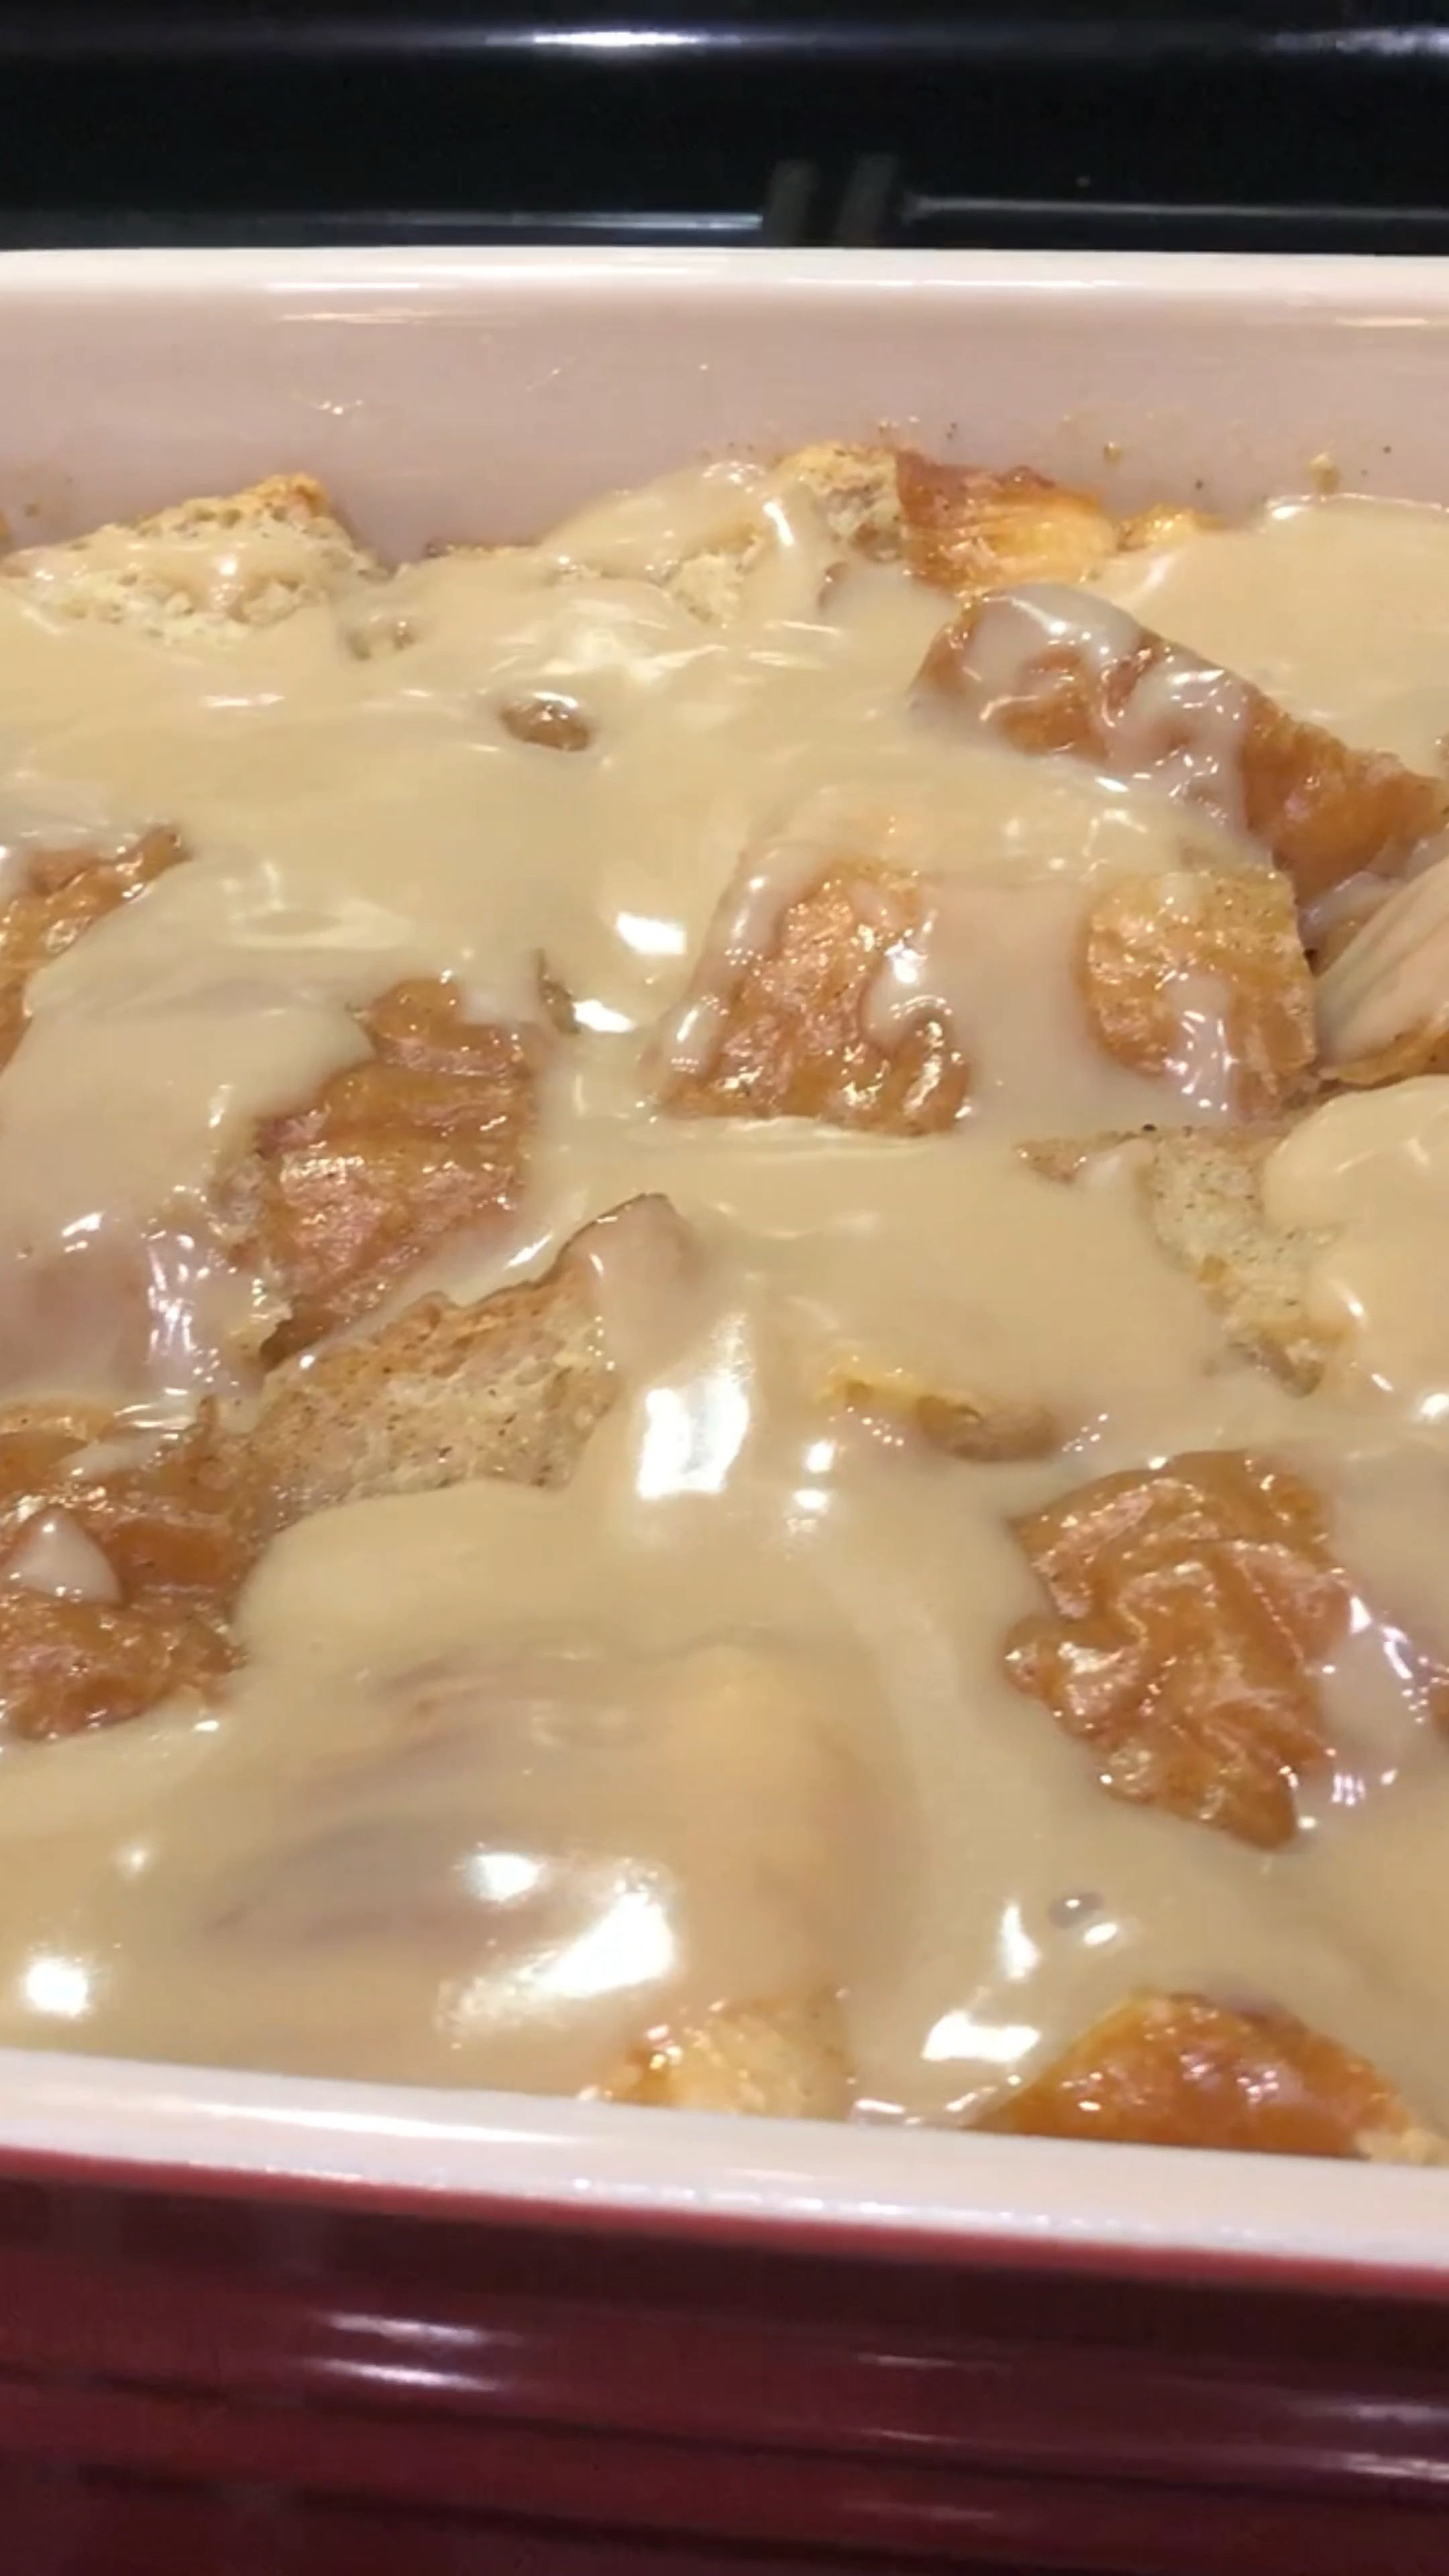 Bread Pudding With Rum Sauce Bread Pudding Sauce Bakedfrenchtoastrecipe In 2020 Evaporated Milk Recipes Old Fashioned Bread Pudding Bread Pudding